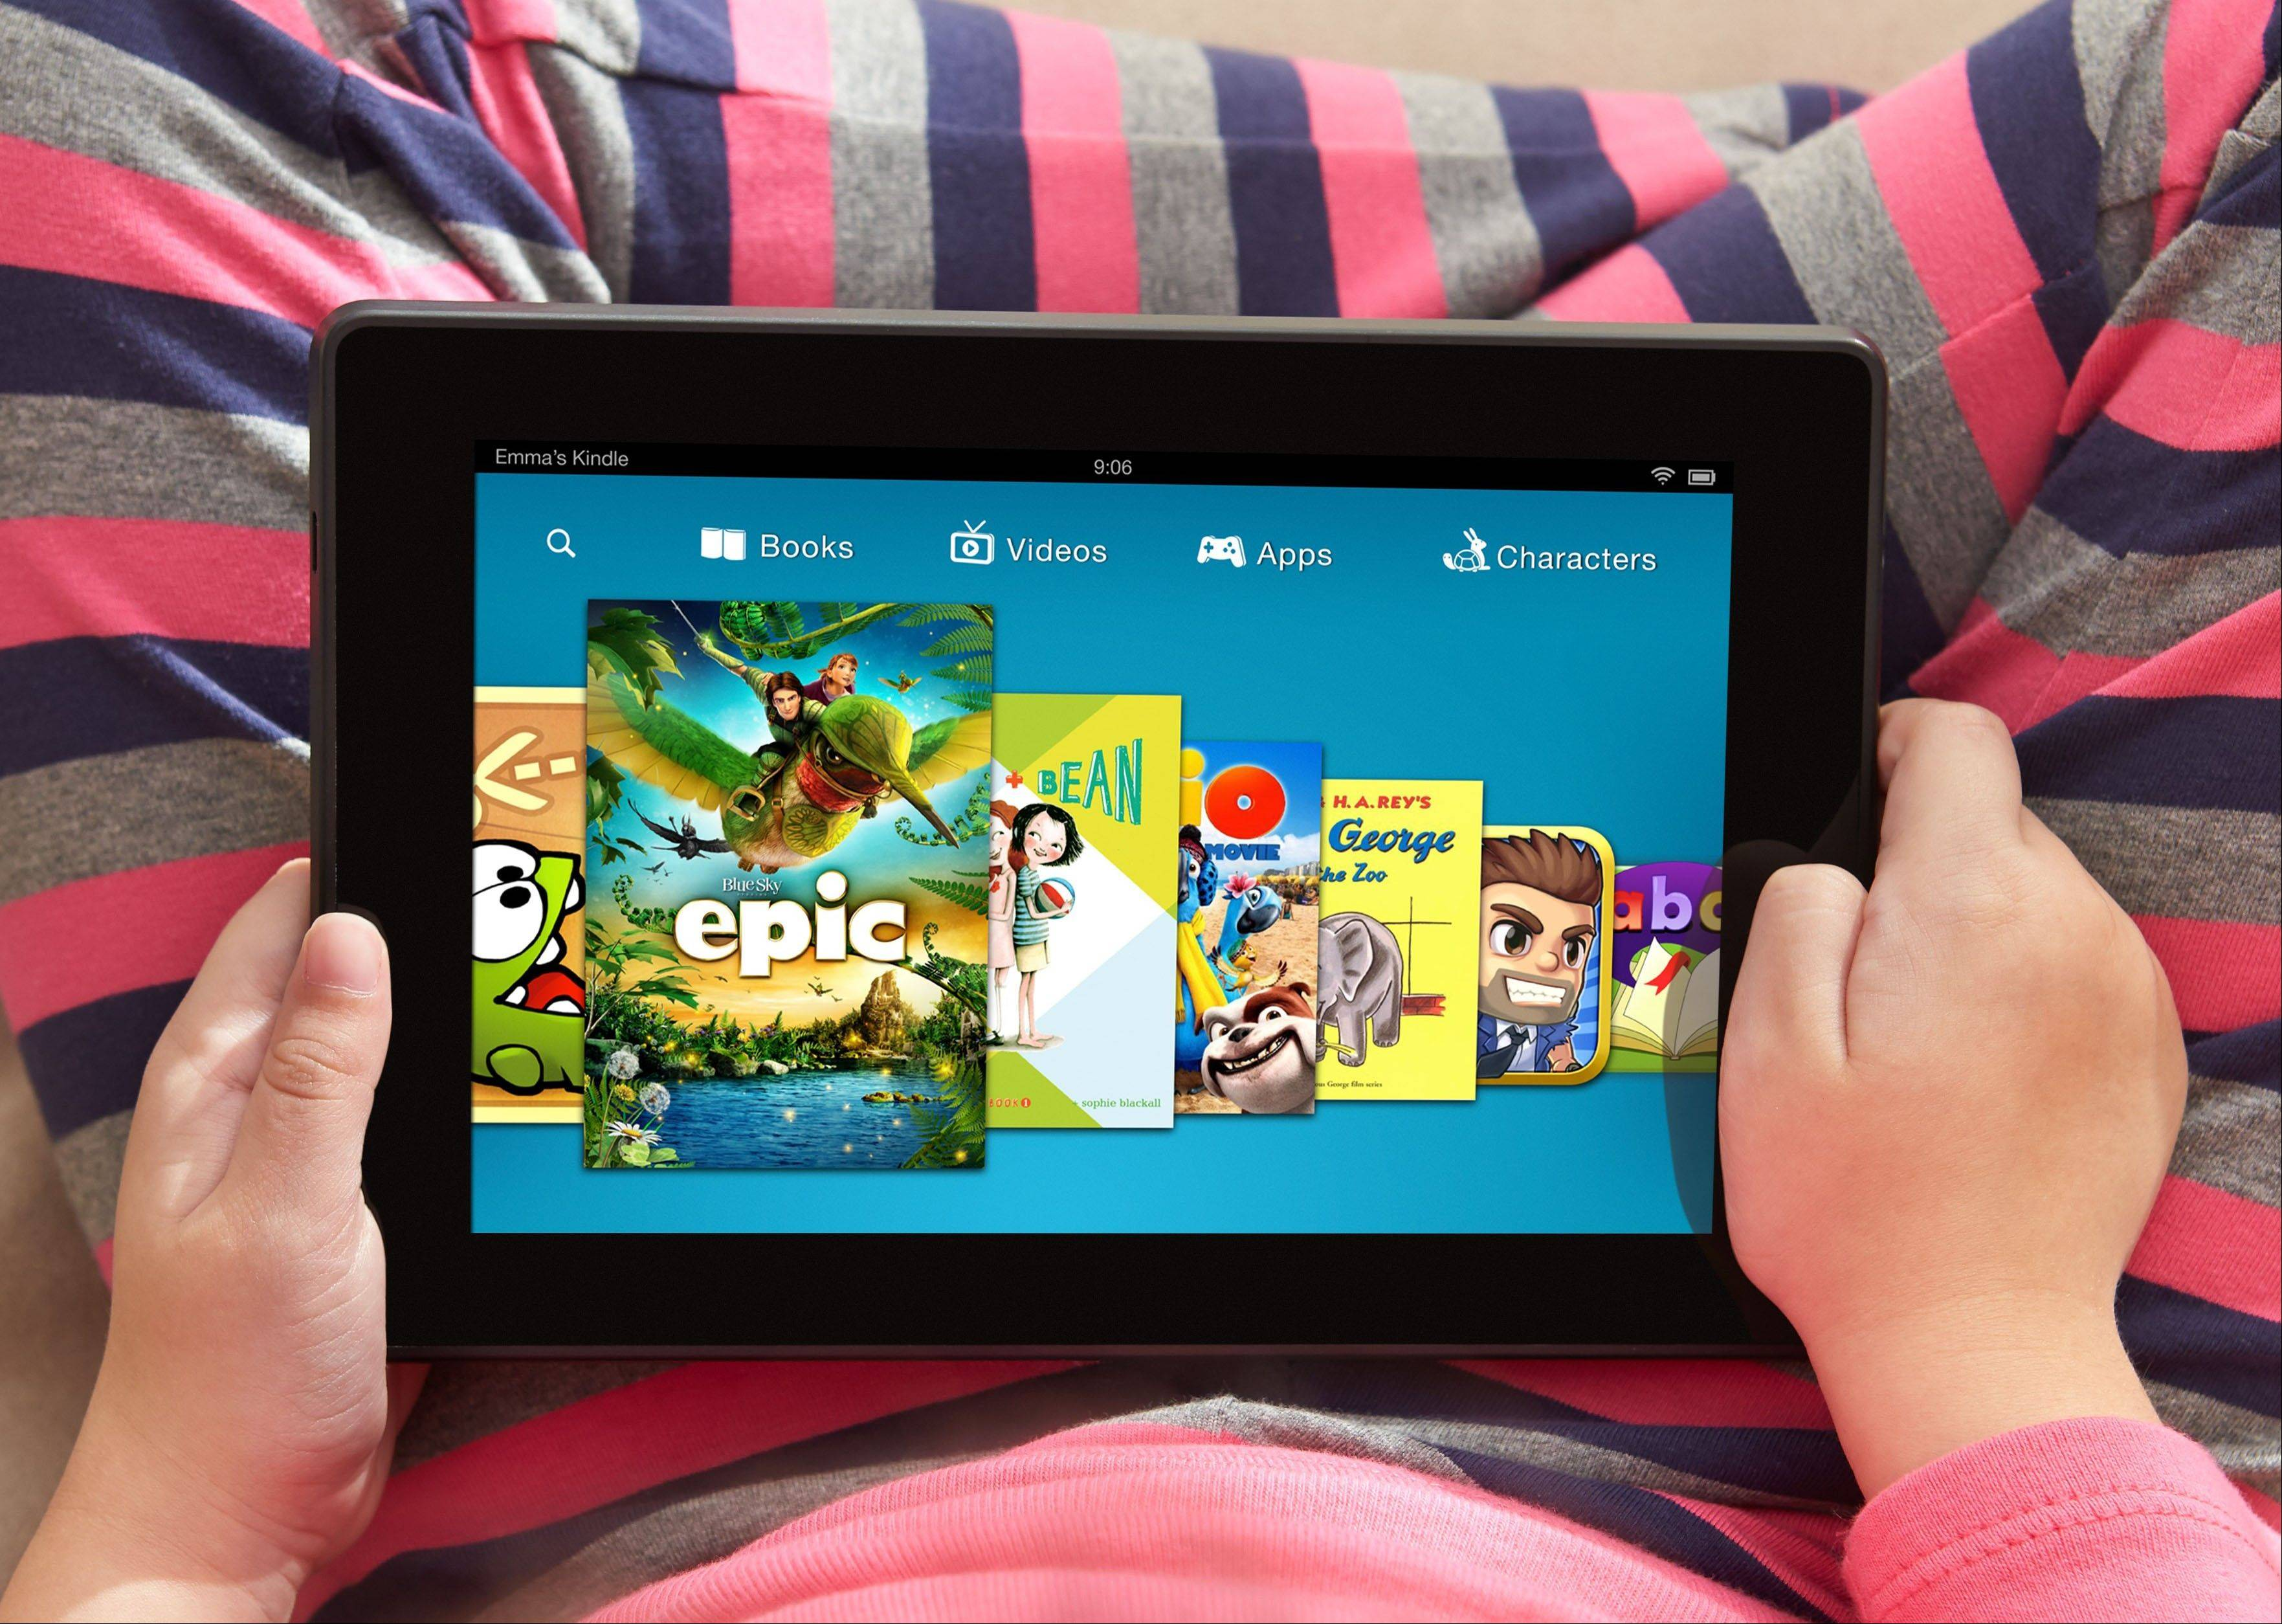 Amazon.com Inc.'s Kindle FreeTime gives parents an easy way to block grown-up content. With FreeTime, kids get thousands of kid-friendly books, games and videos for a monthly fee.